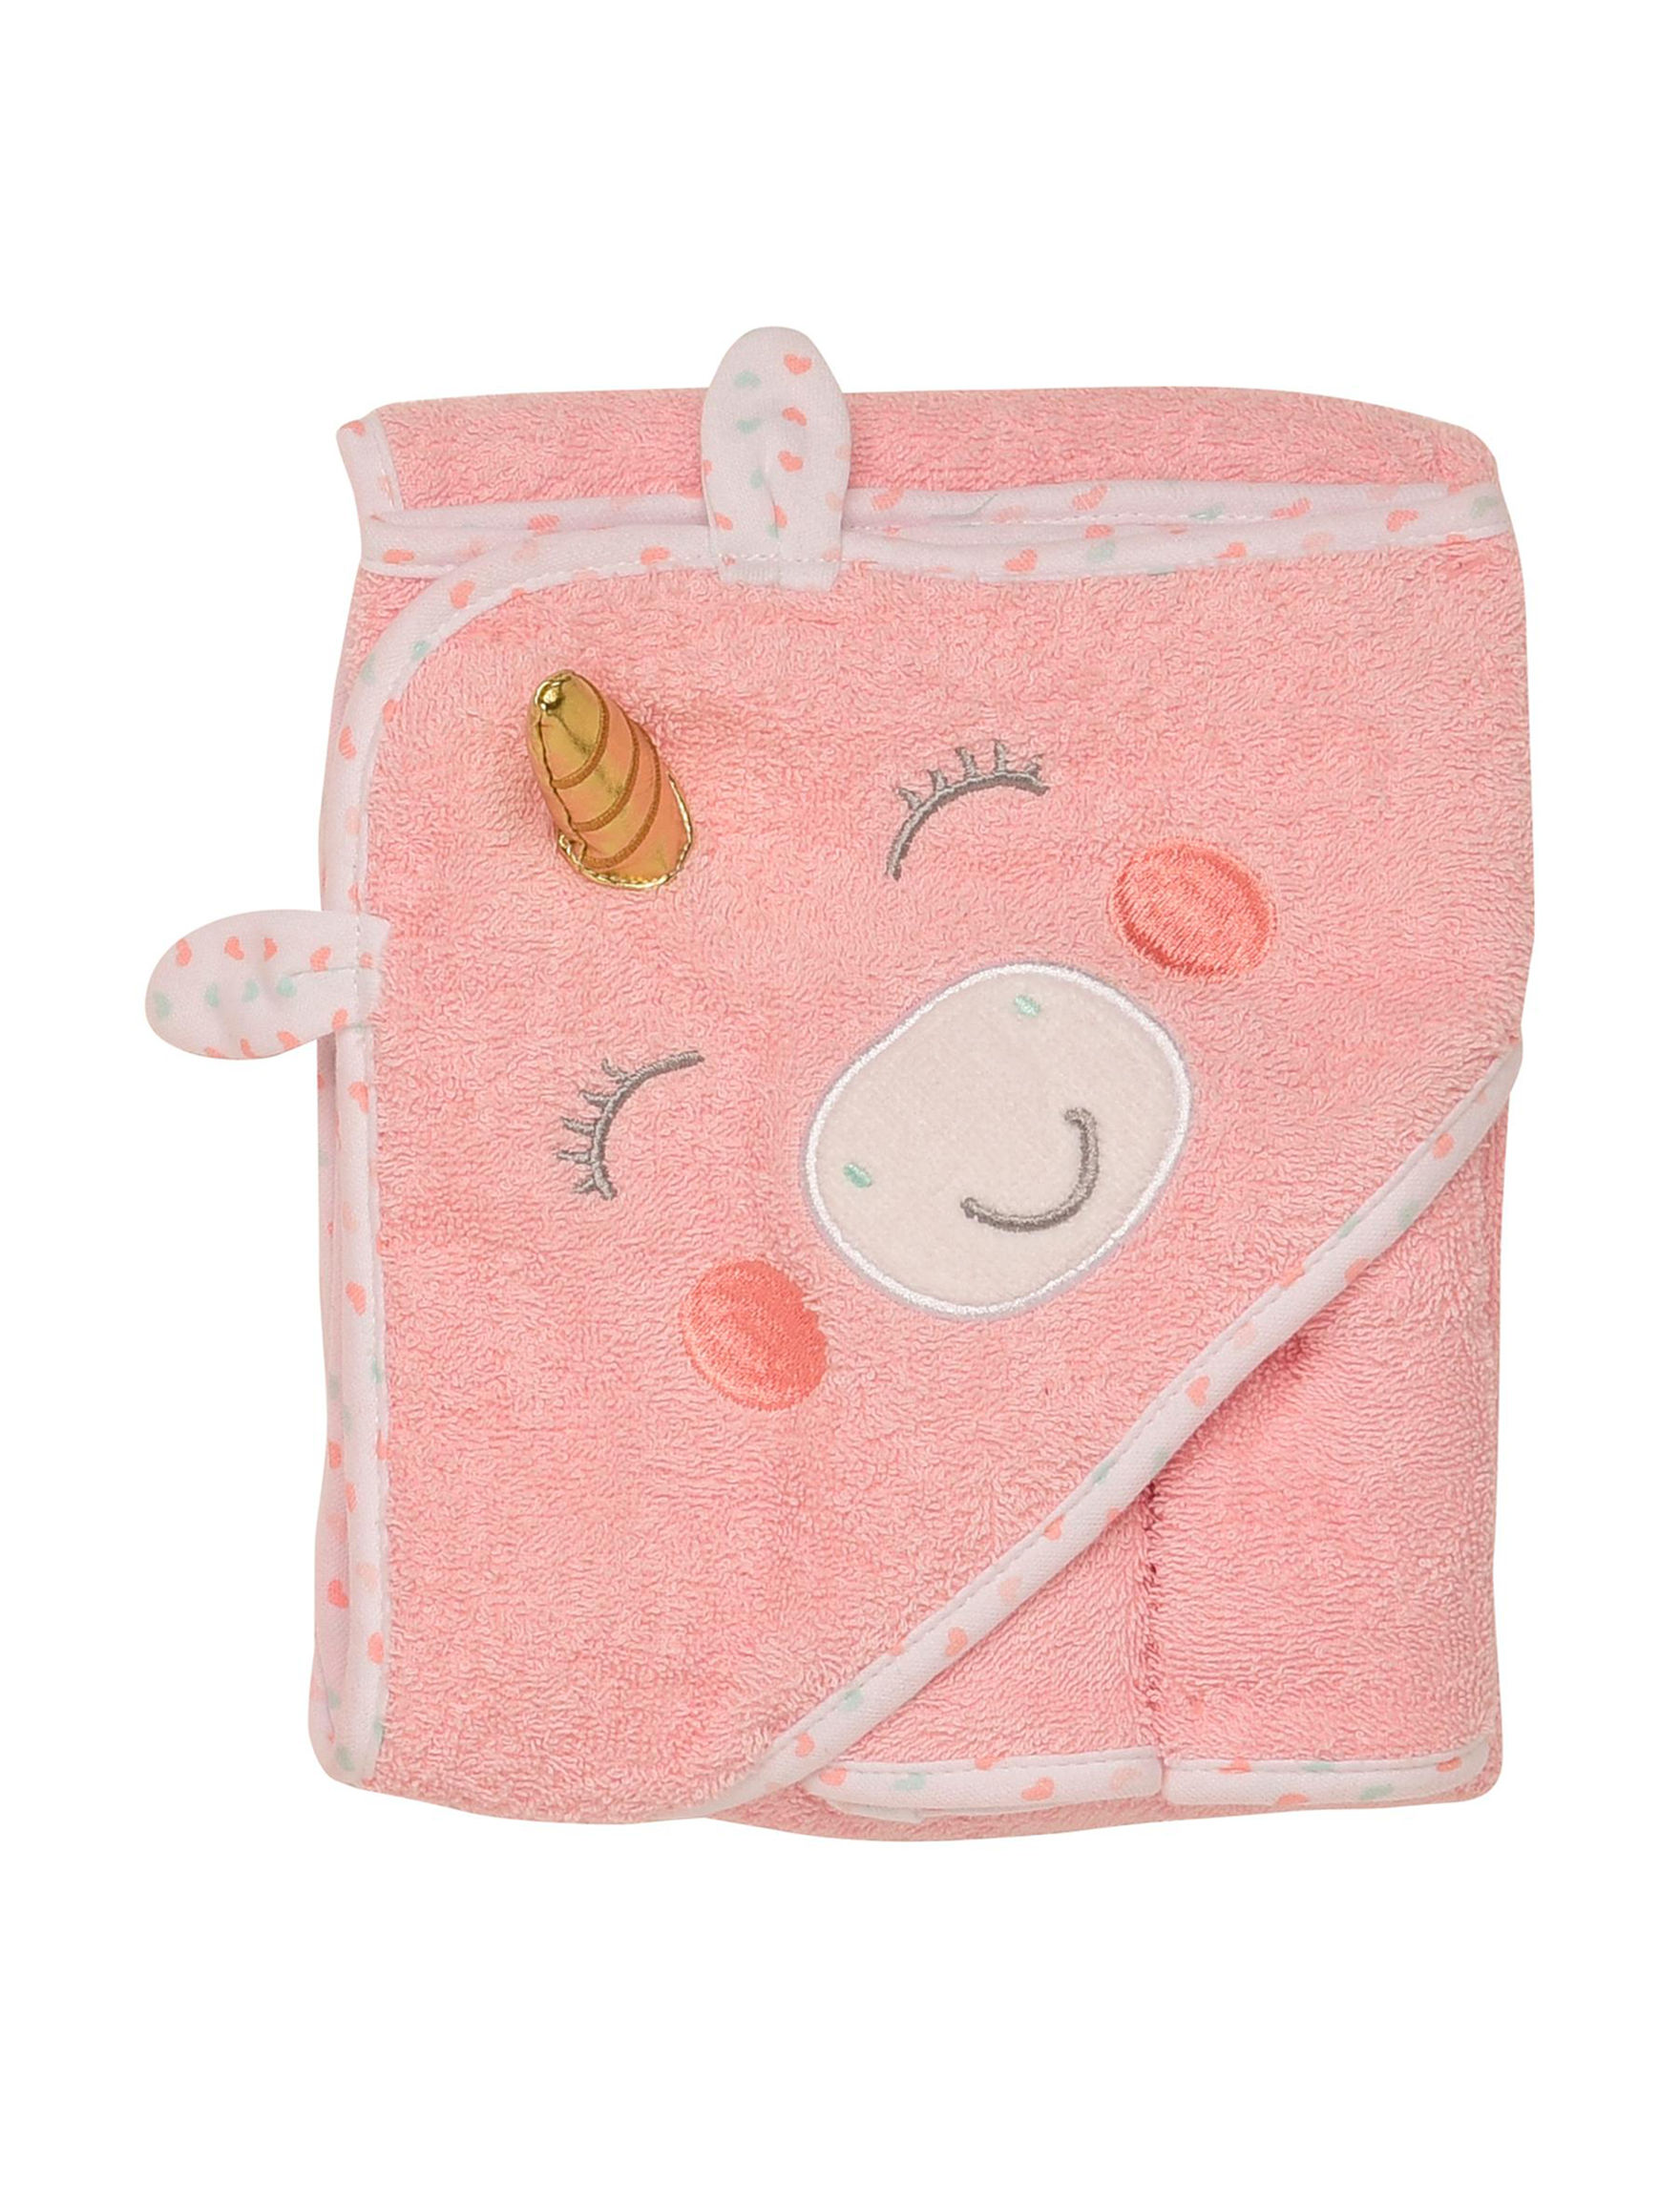 Baby Starters Pink Hooded Towels Washcloths